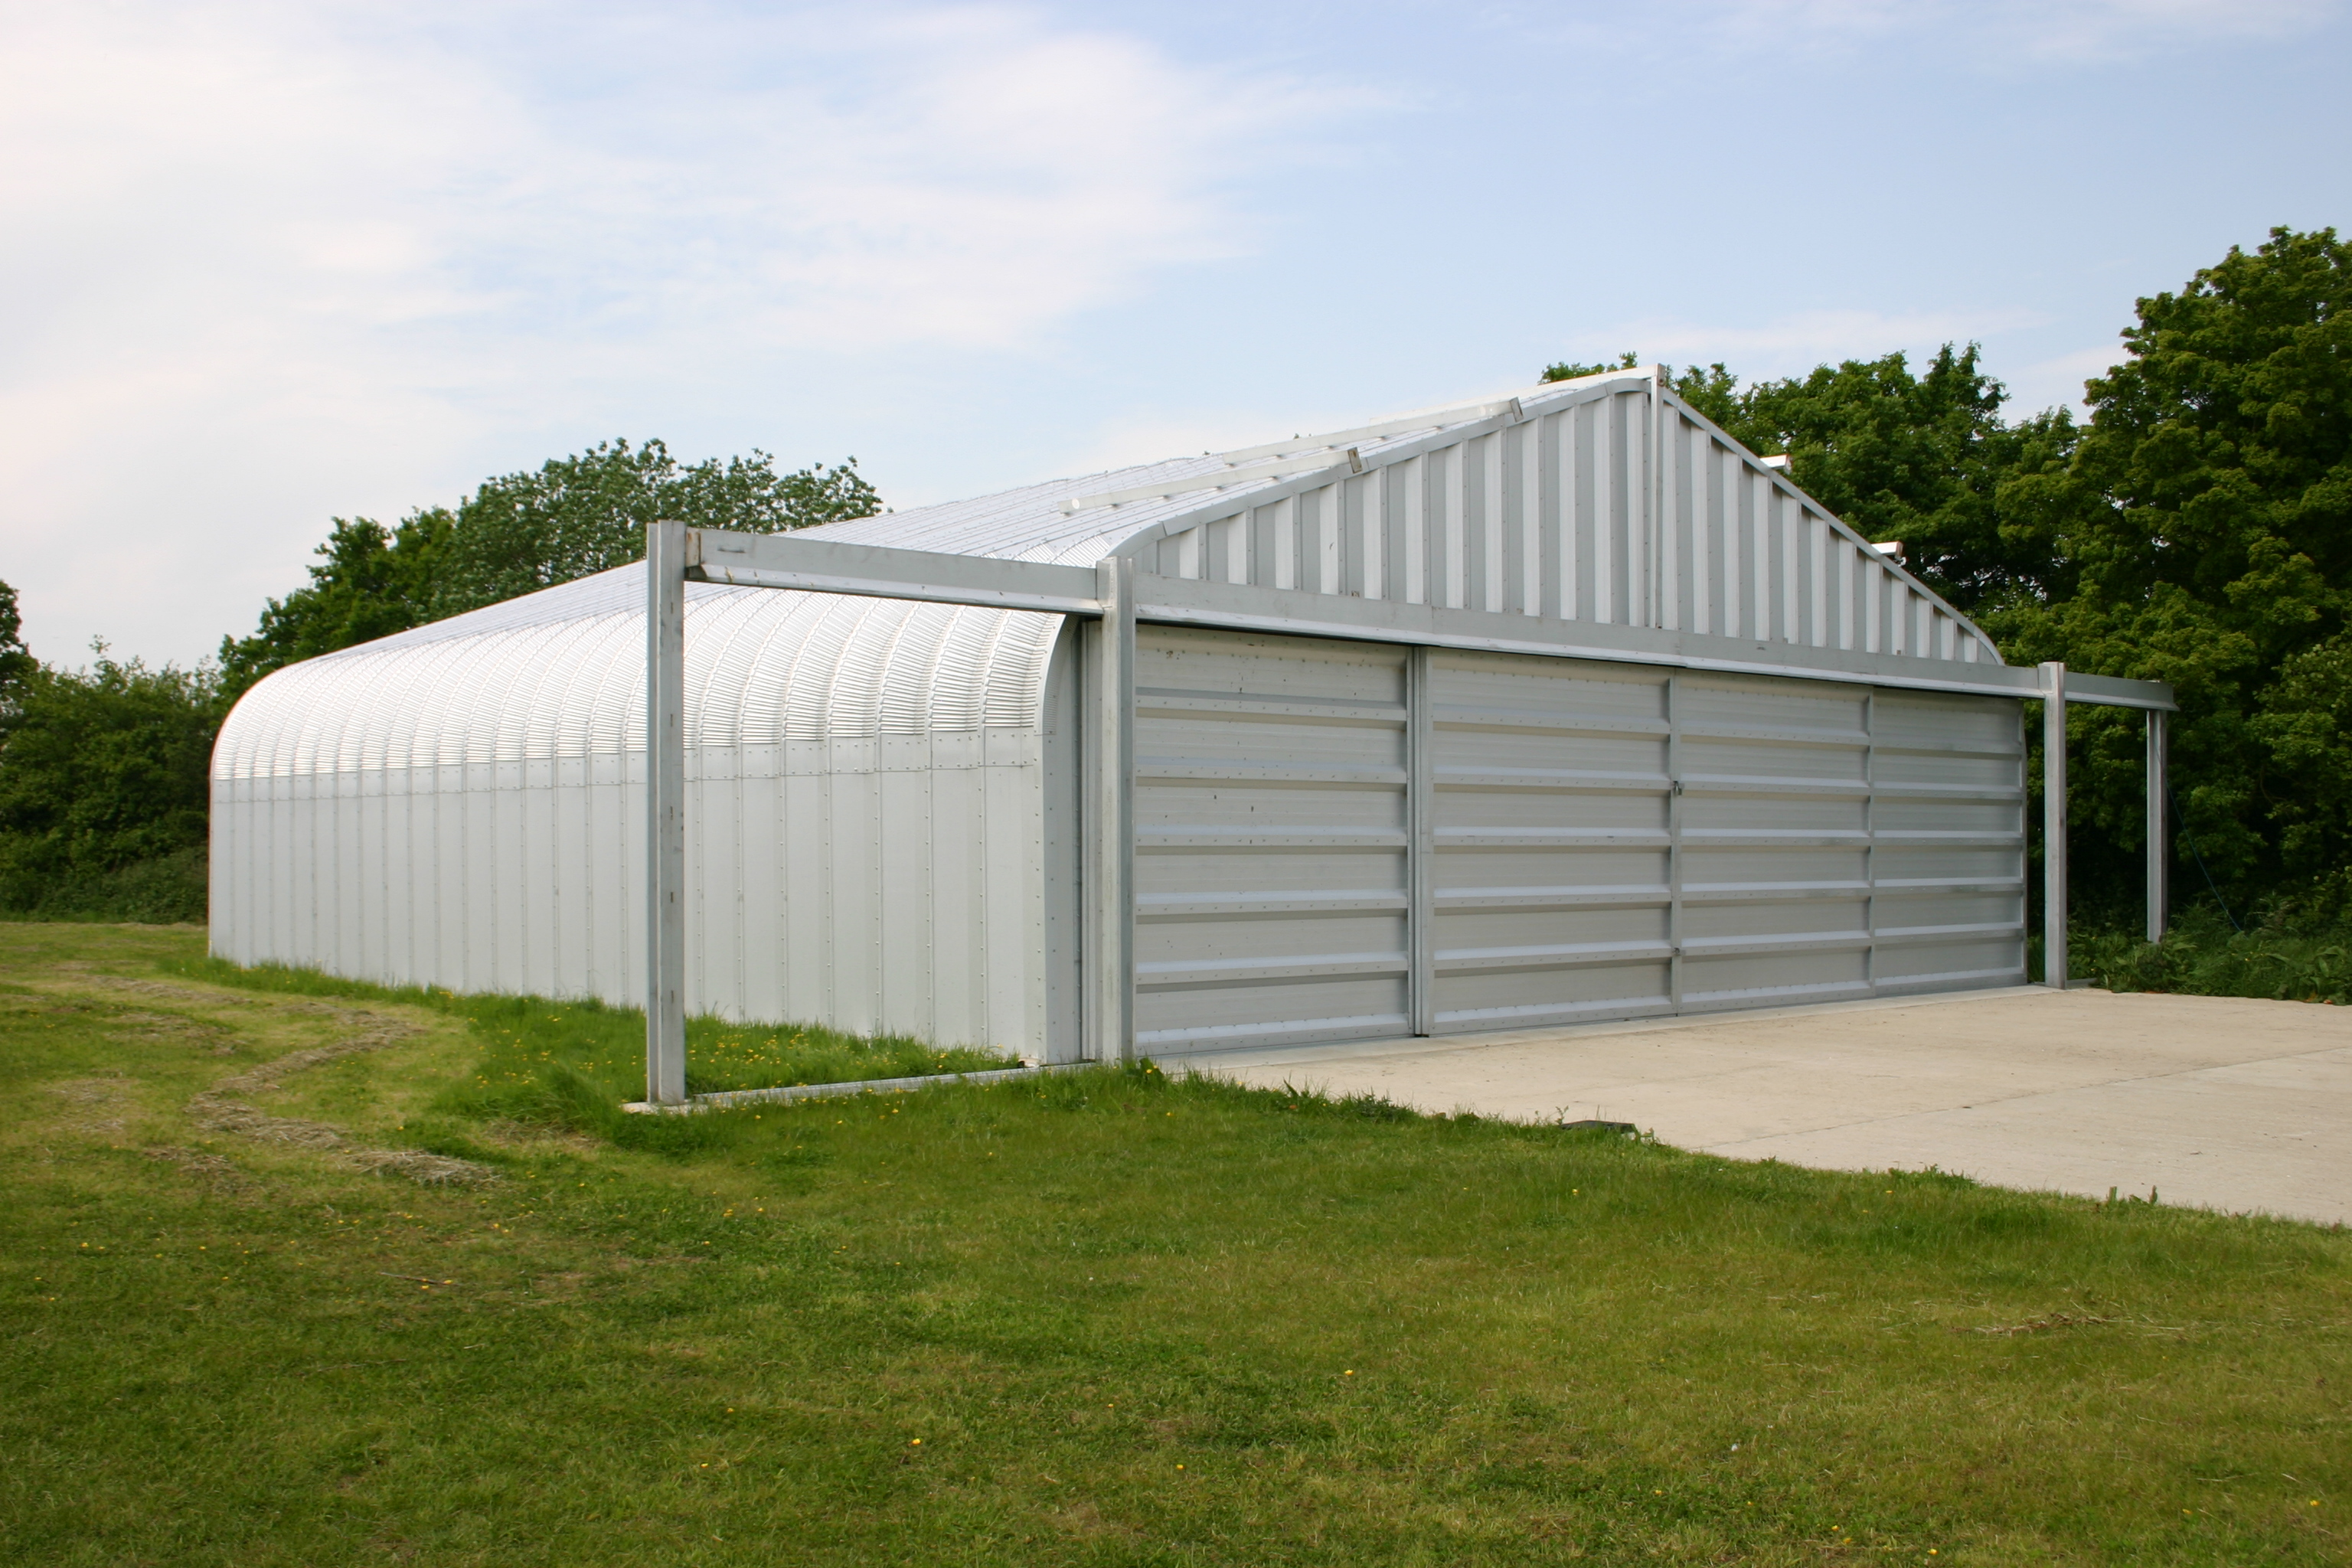 Prefabricated Aircraft Hangars By Miracle Span